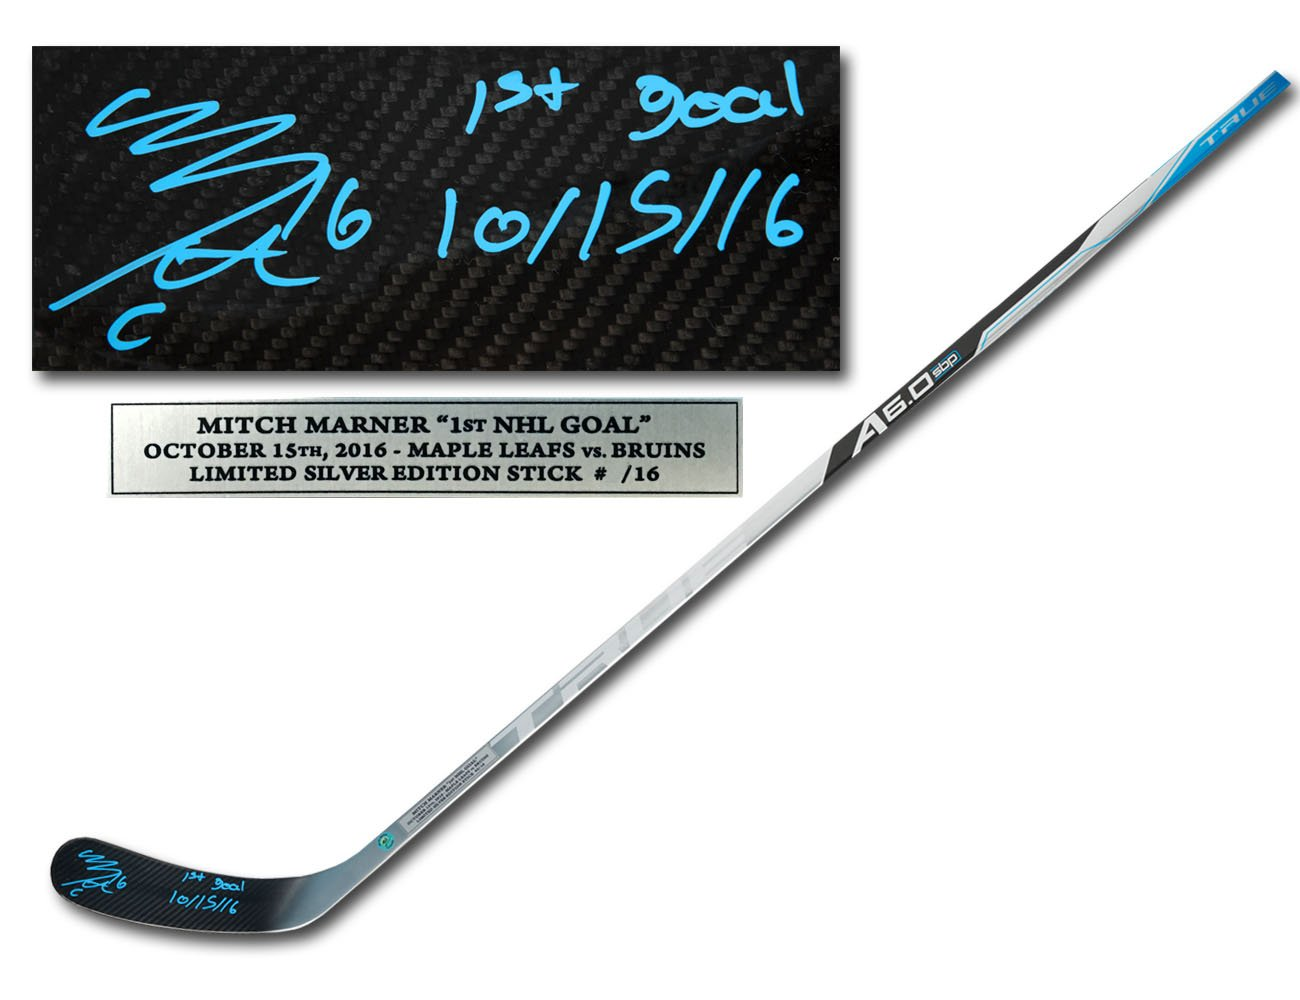 Mitch Marner Signed & Inscribed 1st Goal Silver Edition TRUE Hockey Stick #/16